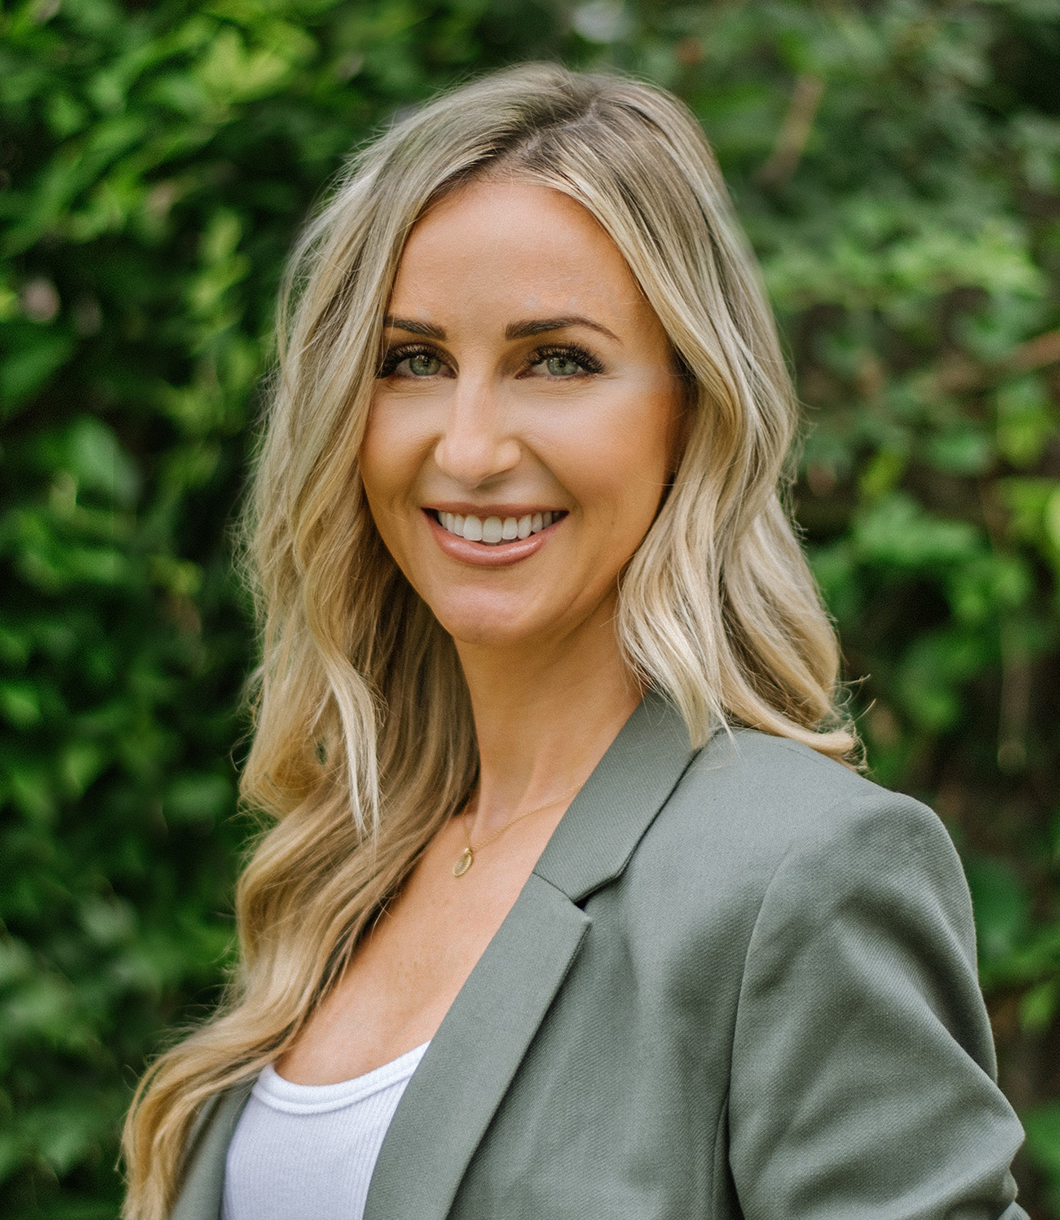 Lindy Wilhite - Agent at The Reyna Group